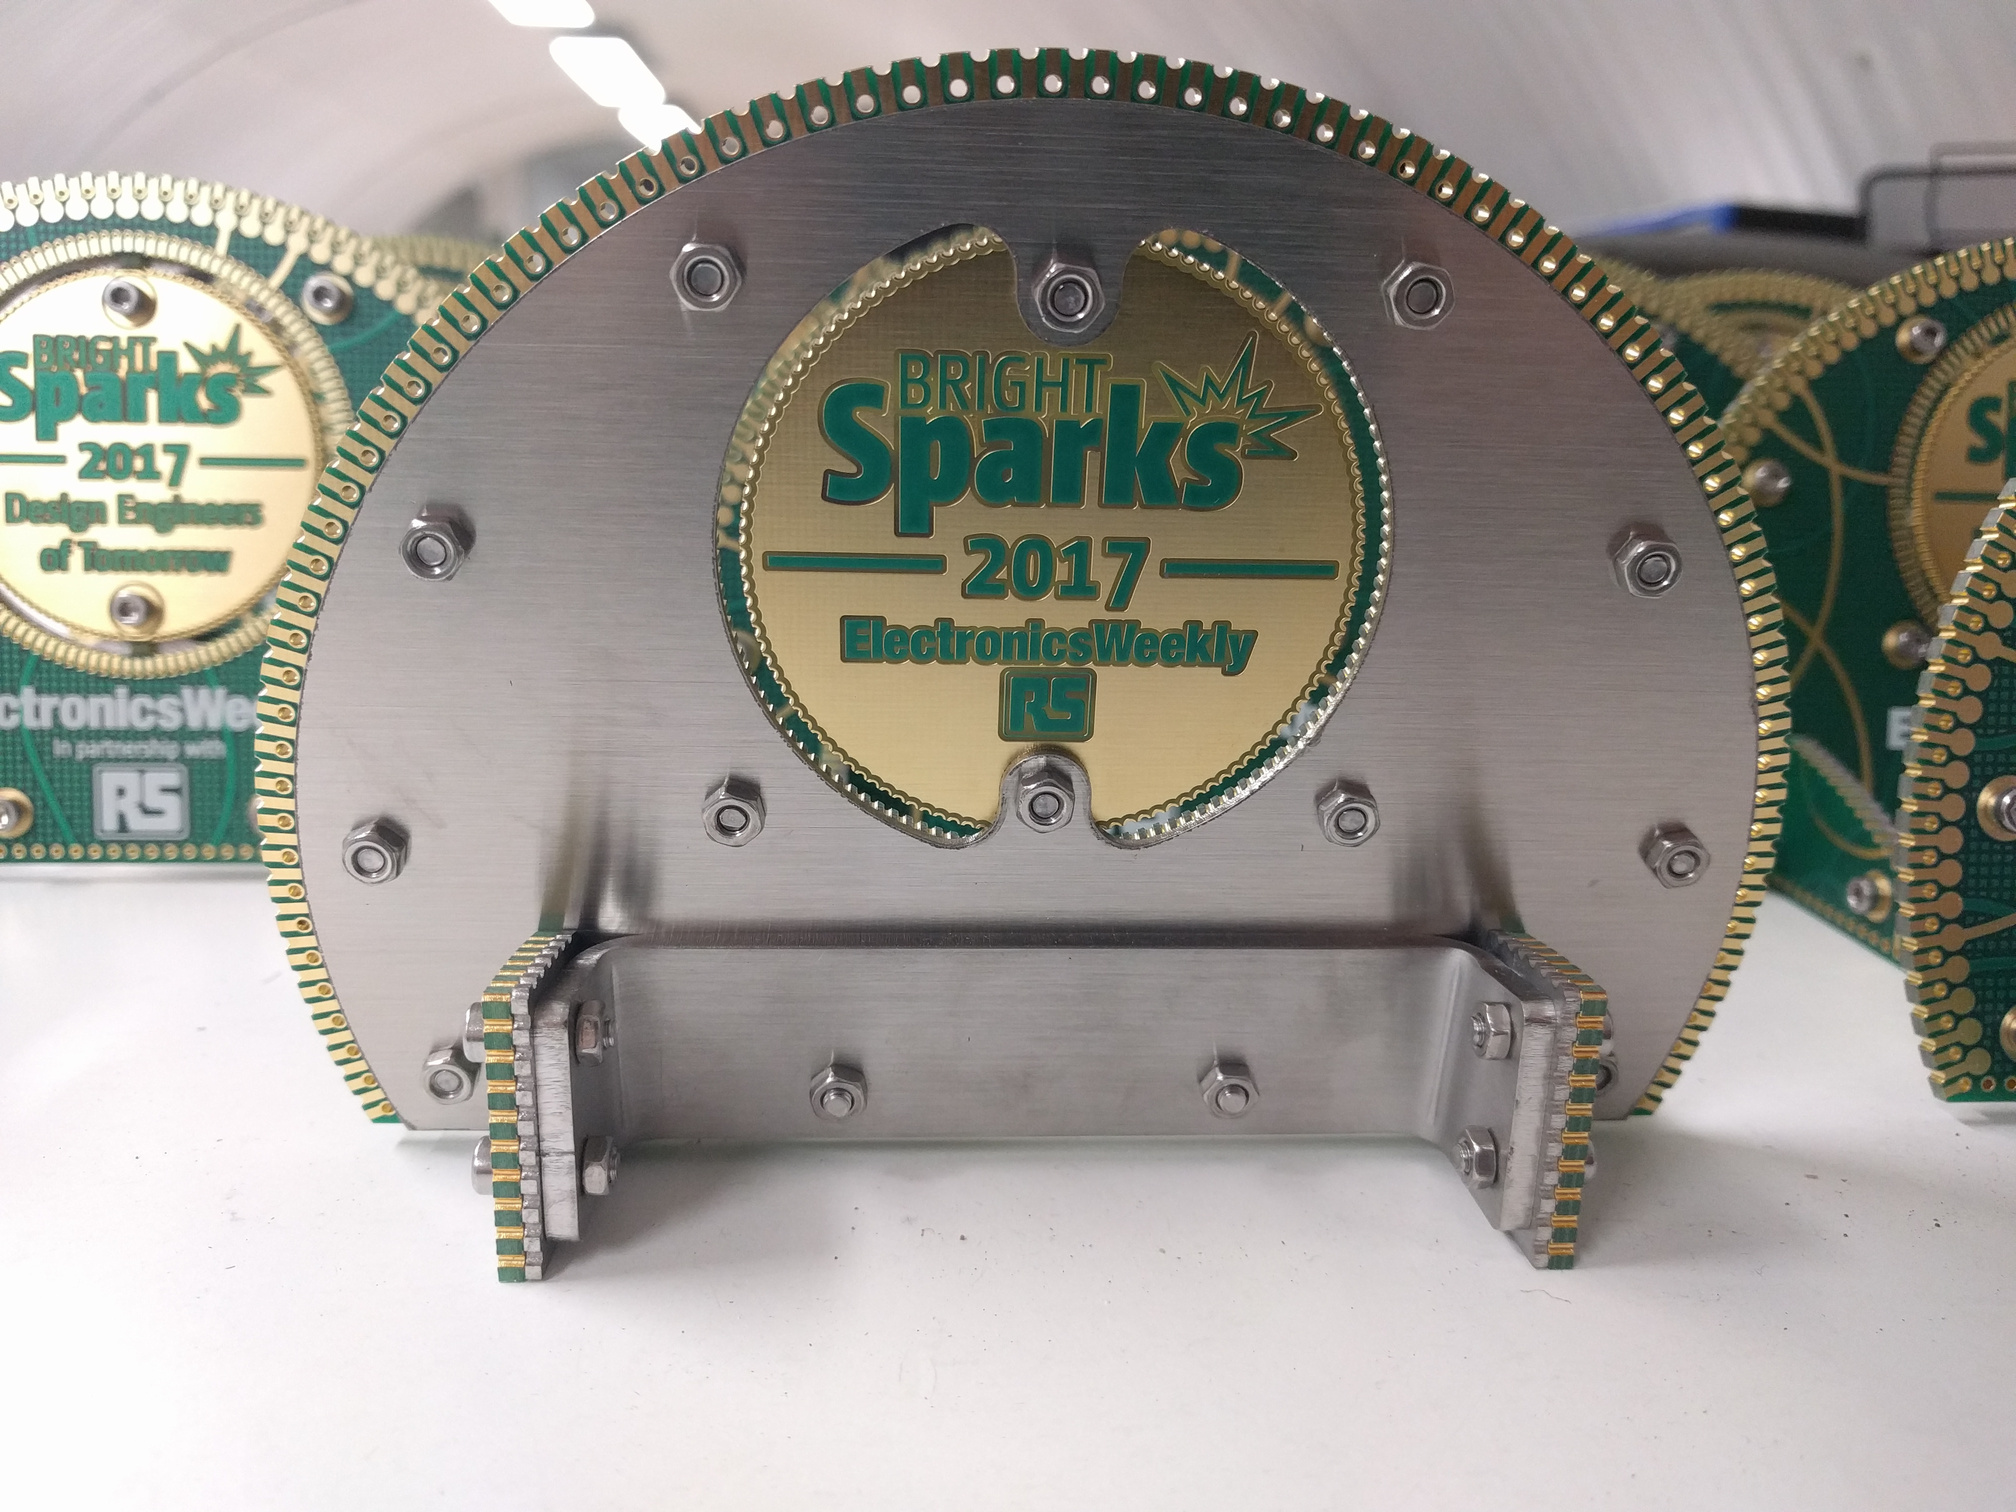 The back of the trophy. The main body and stands have a 1.5mm thick stainless steel backing attached with M3 screws and nuts. A custom 3mm thick stainless bracket holds everything together and adds weight. The position of the bracket also lowers the centre of gravity so that the piece sits solidly on the surface.